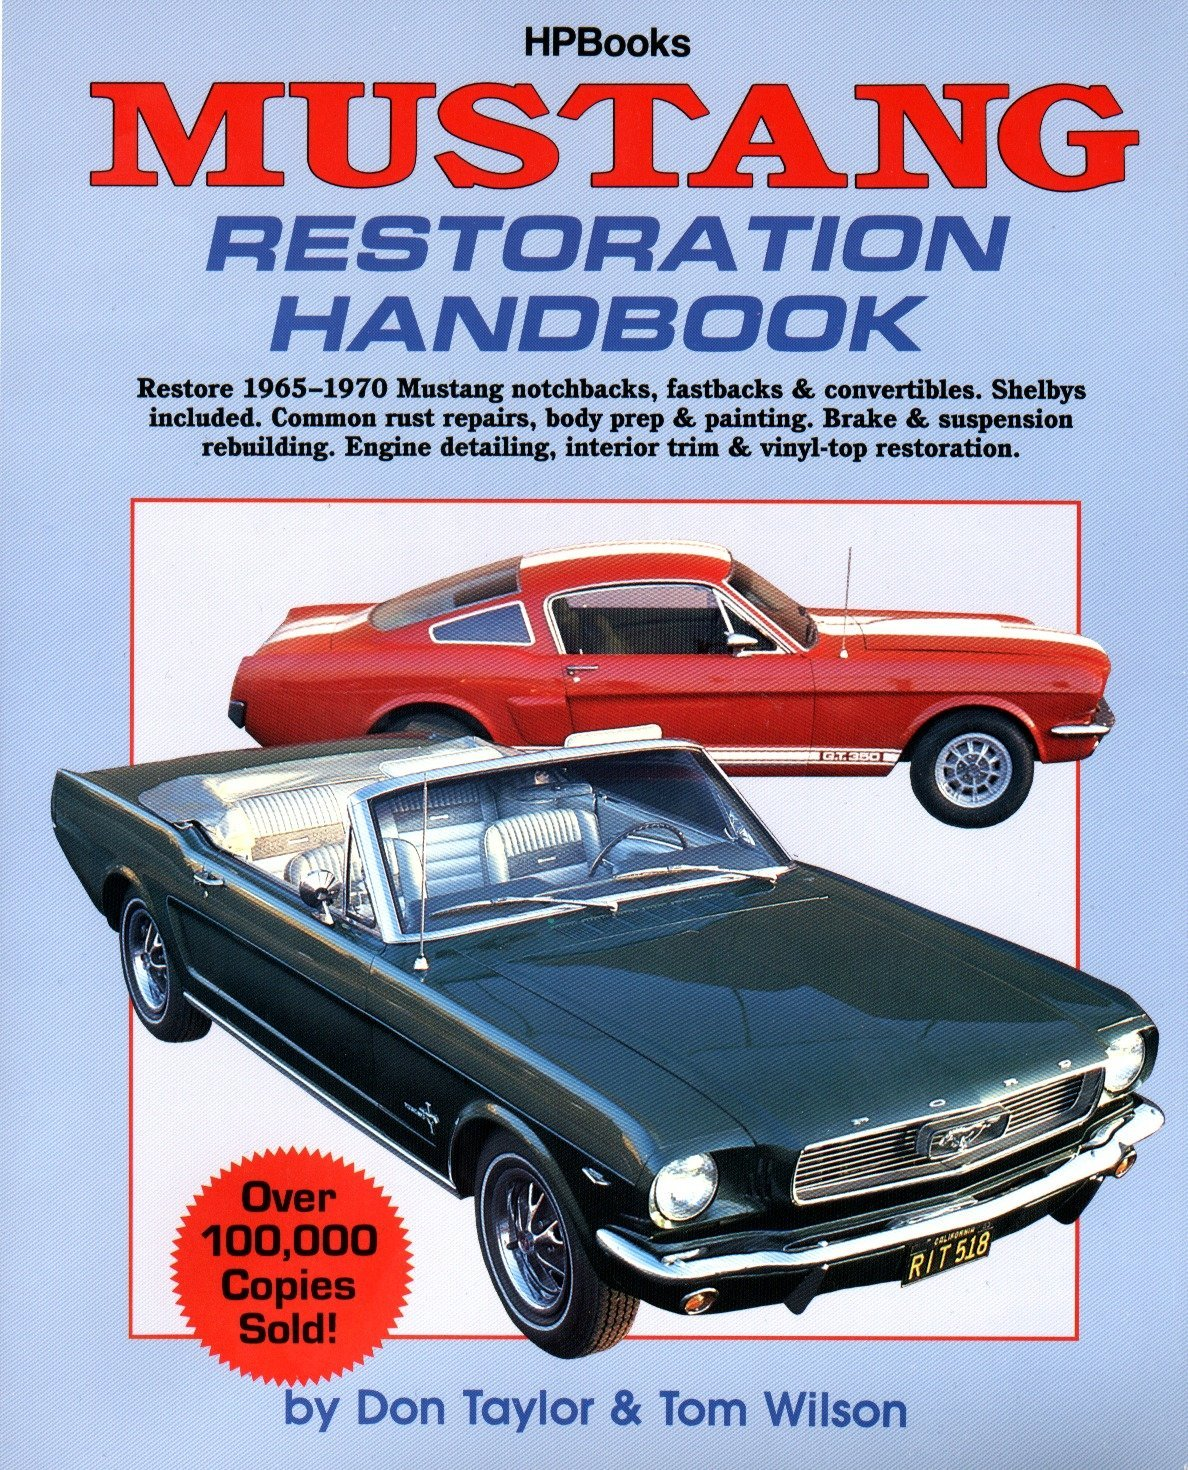 Mustang Restoration Handbook: Don Taylor: 0075478640294: Amazon.com: Books